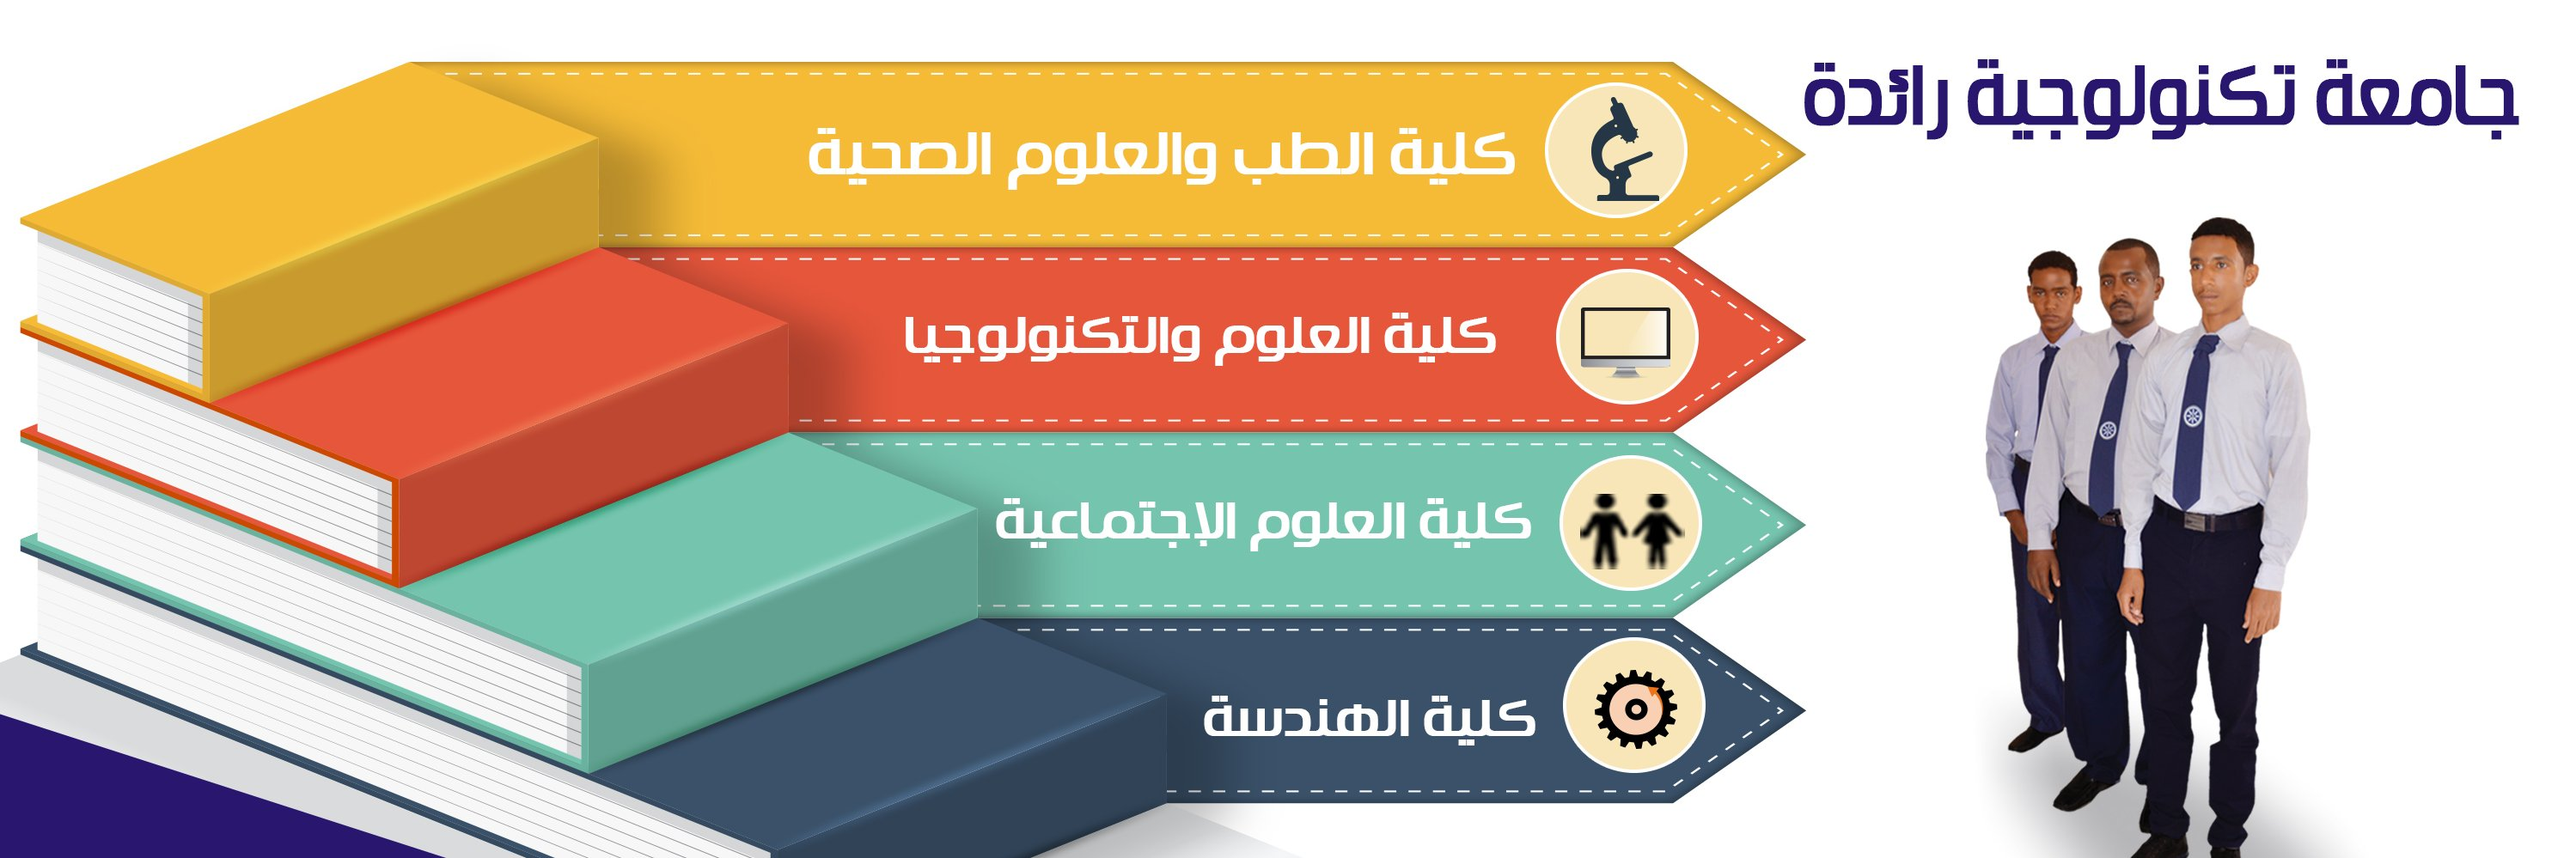 Merowe University of Technology's official Twitter account